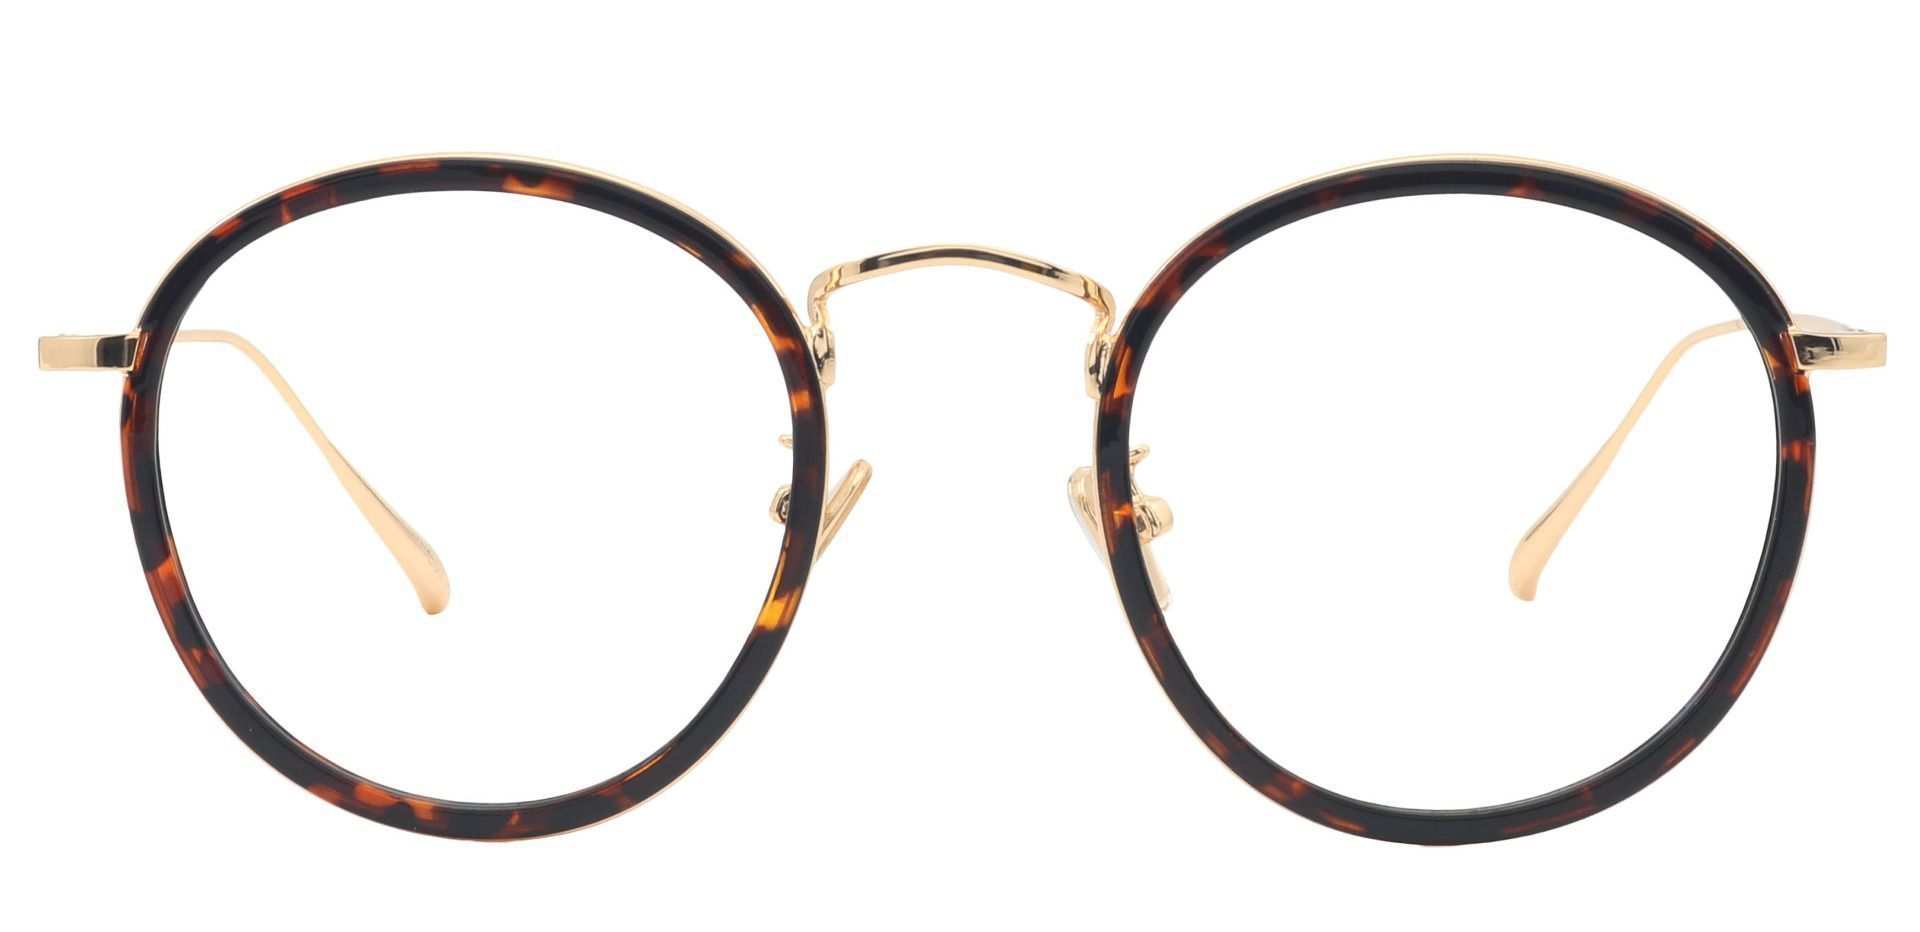 Croatia Round Lined Bifocal Glasses - Leopard